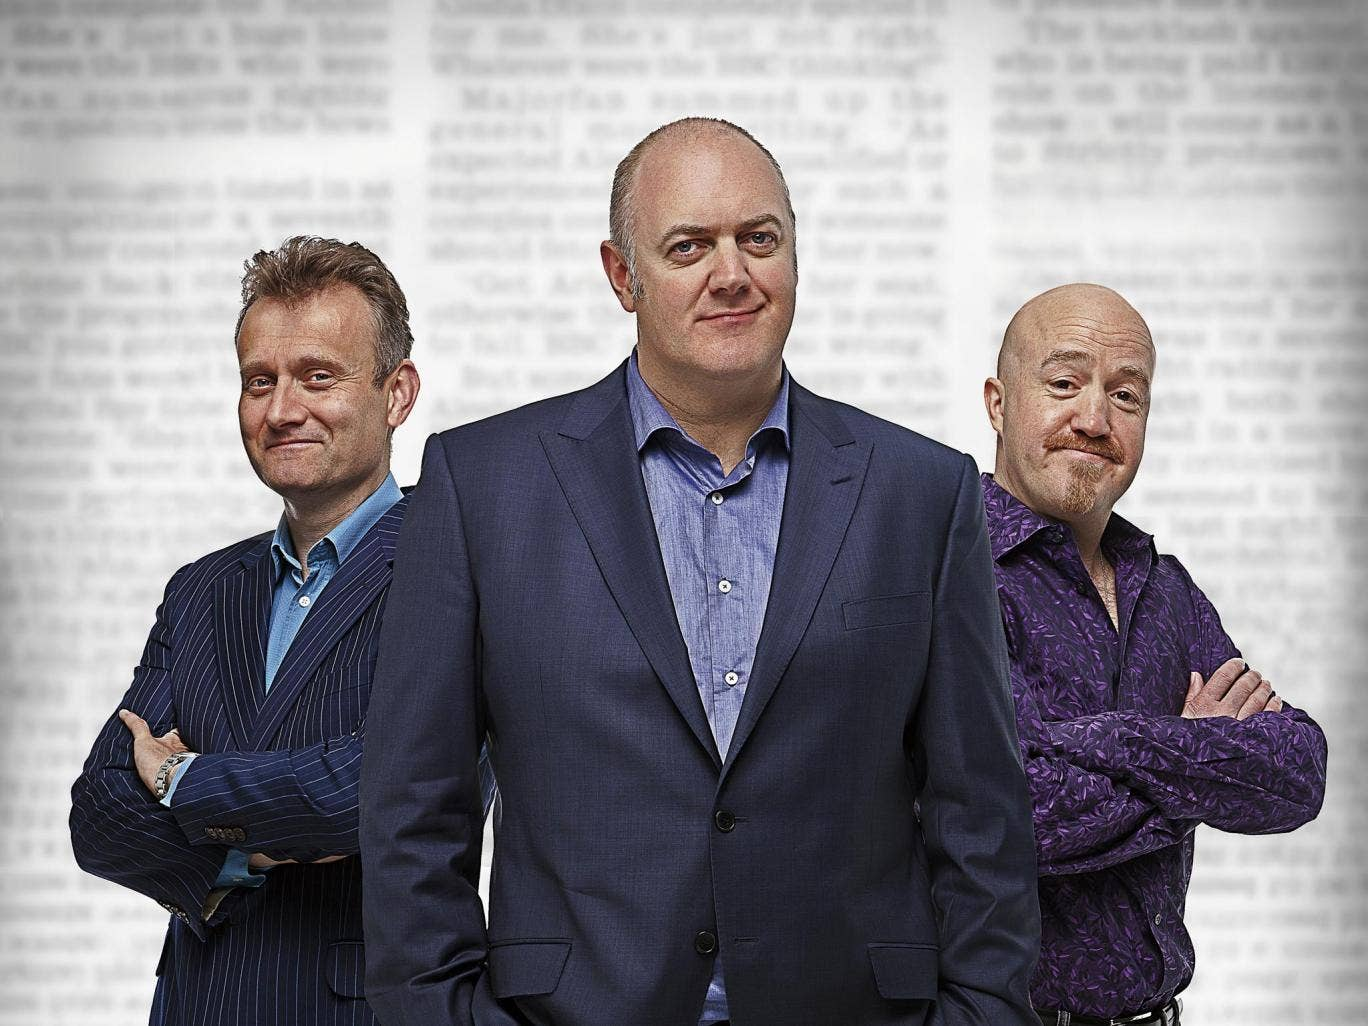 Shock of the news: 'Mock the Week' host Dara O'Briain with male panellists Hugh Dennis and Andy Parsons